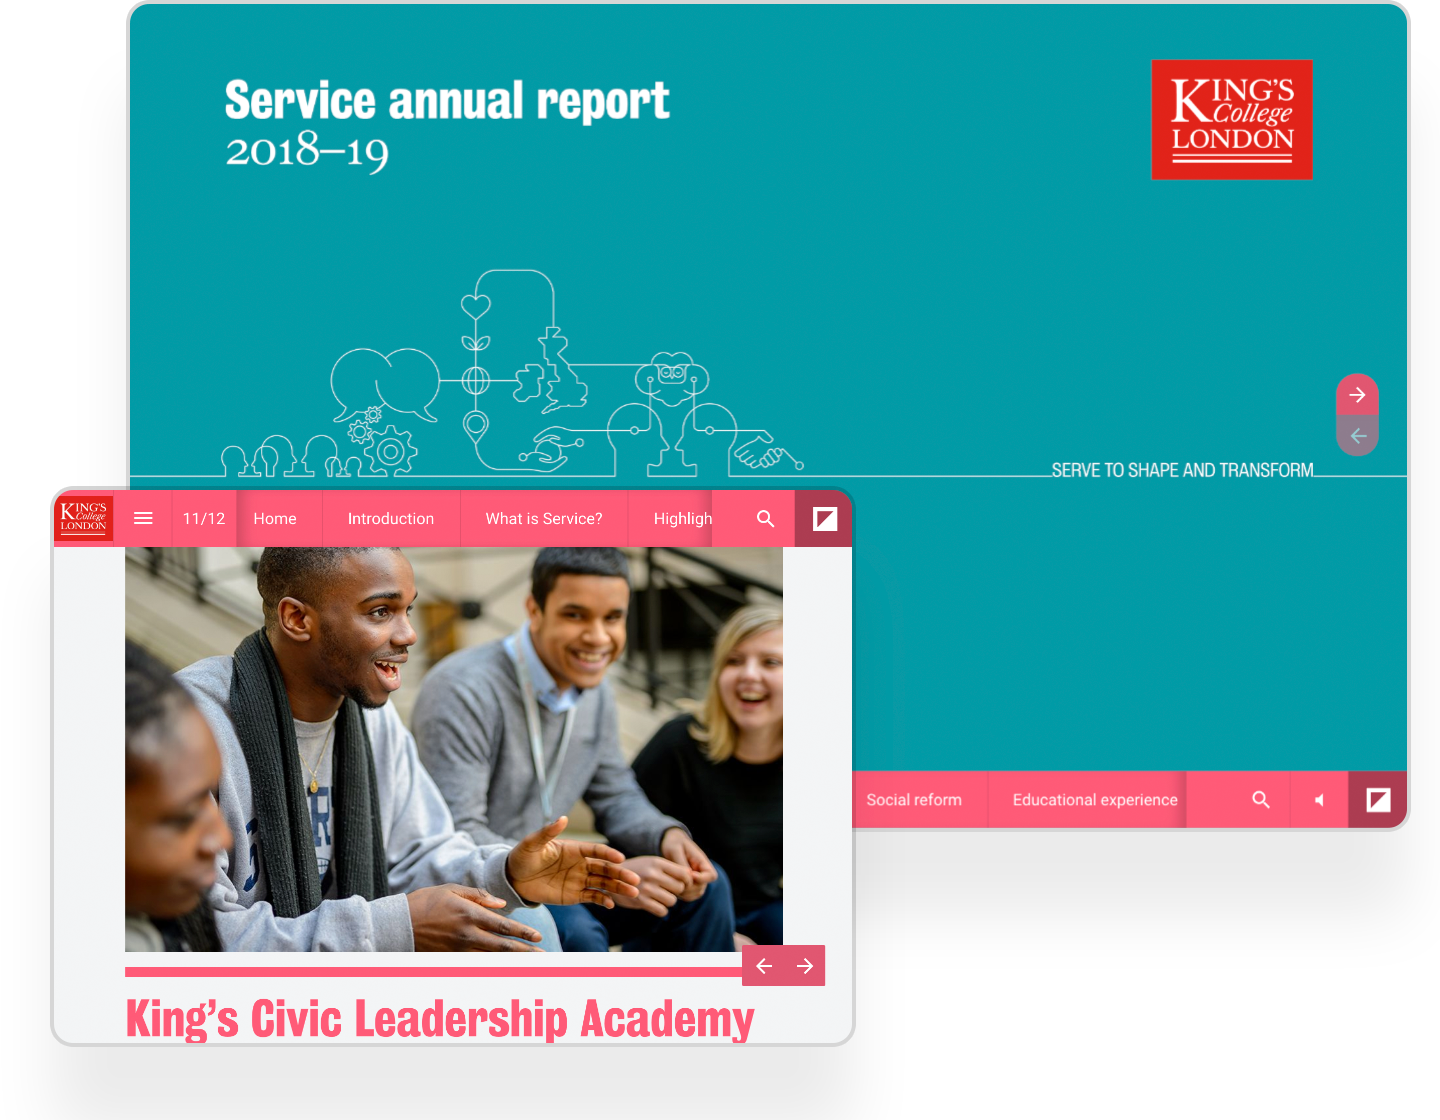 interactive-example-report-kingscollege